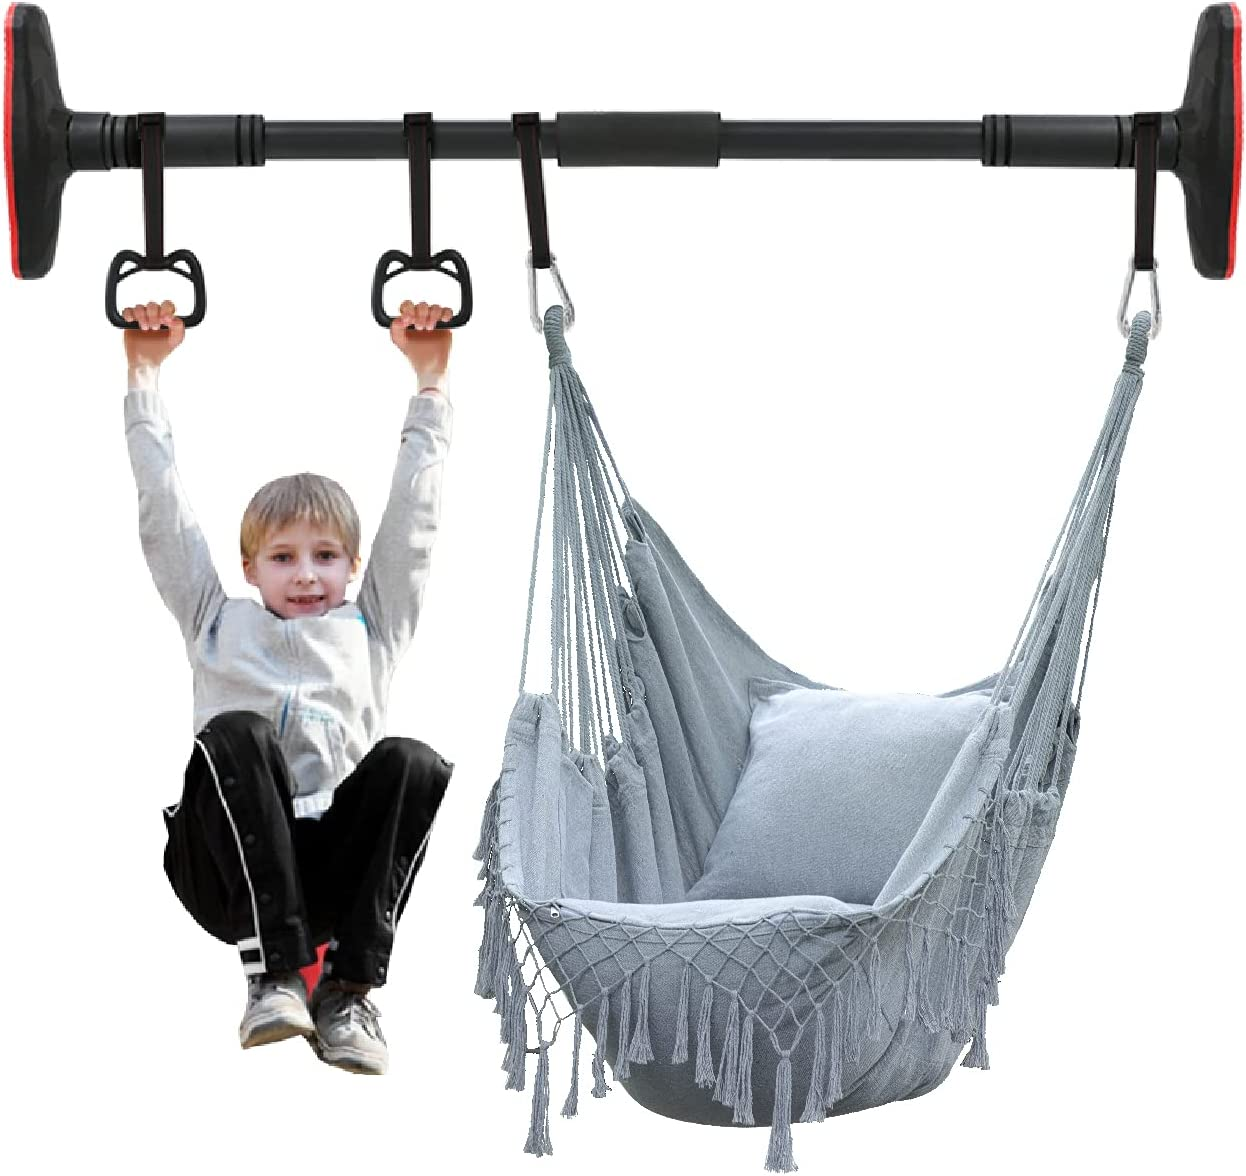 BXL Albuquerque Mall Hammock Raleigh Mall Chair Hanging Rope Swing Exquisite Up Bar with Pull